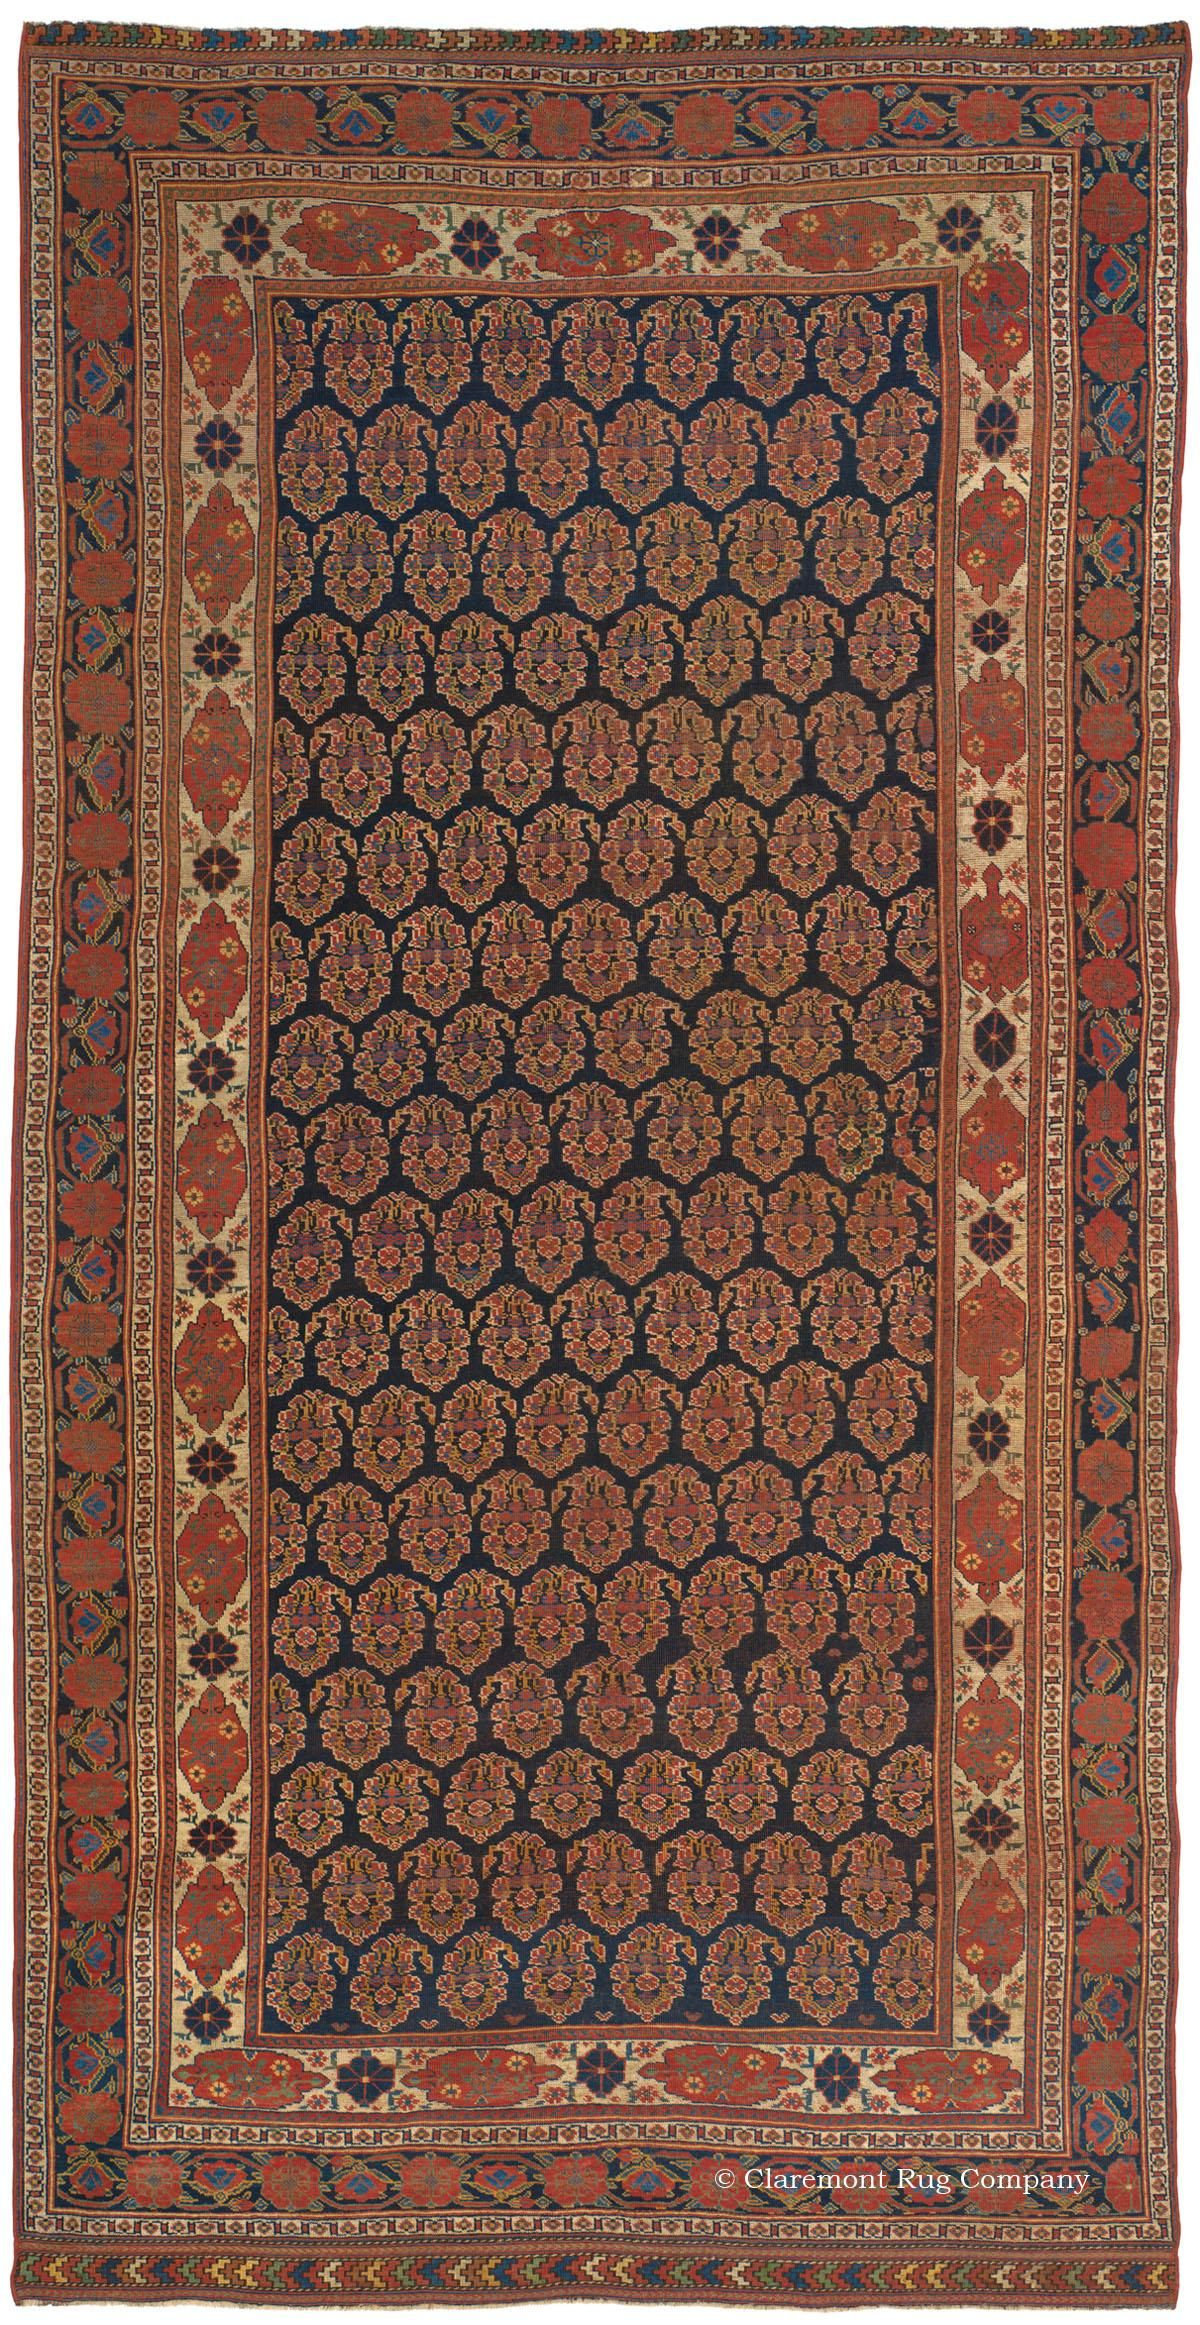 Afshar Southeast Persian 6ft 6in X 12ft 7in Circa 1875 Rugs On Carpet Persian Tribal Rugs Rugs